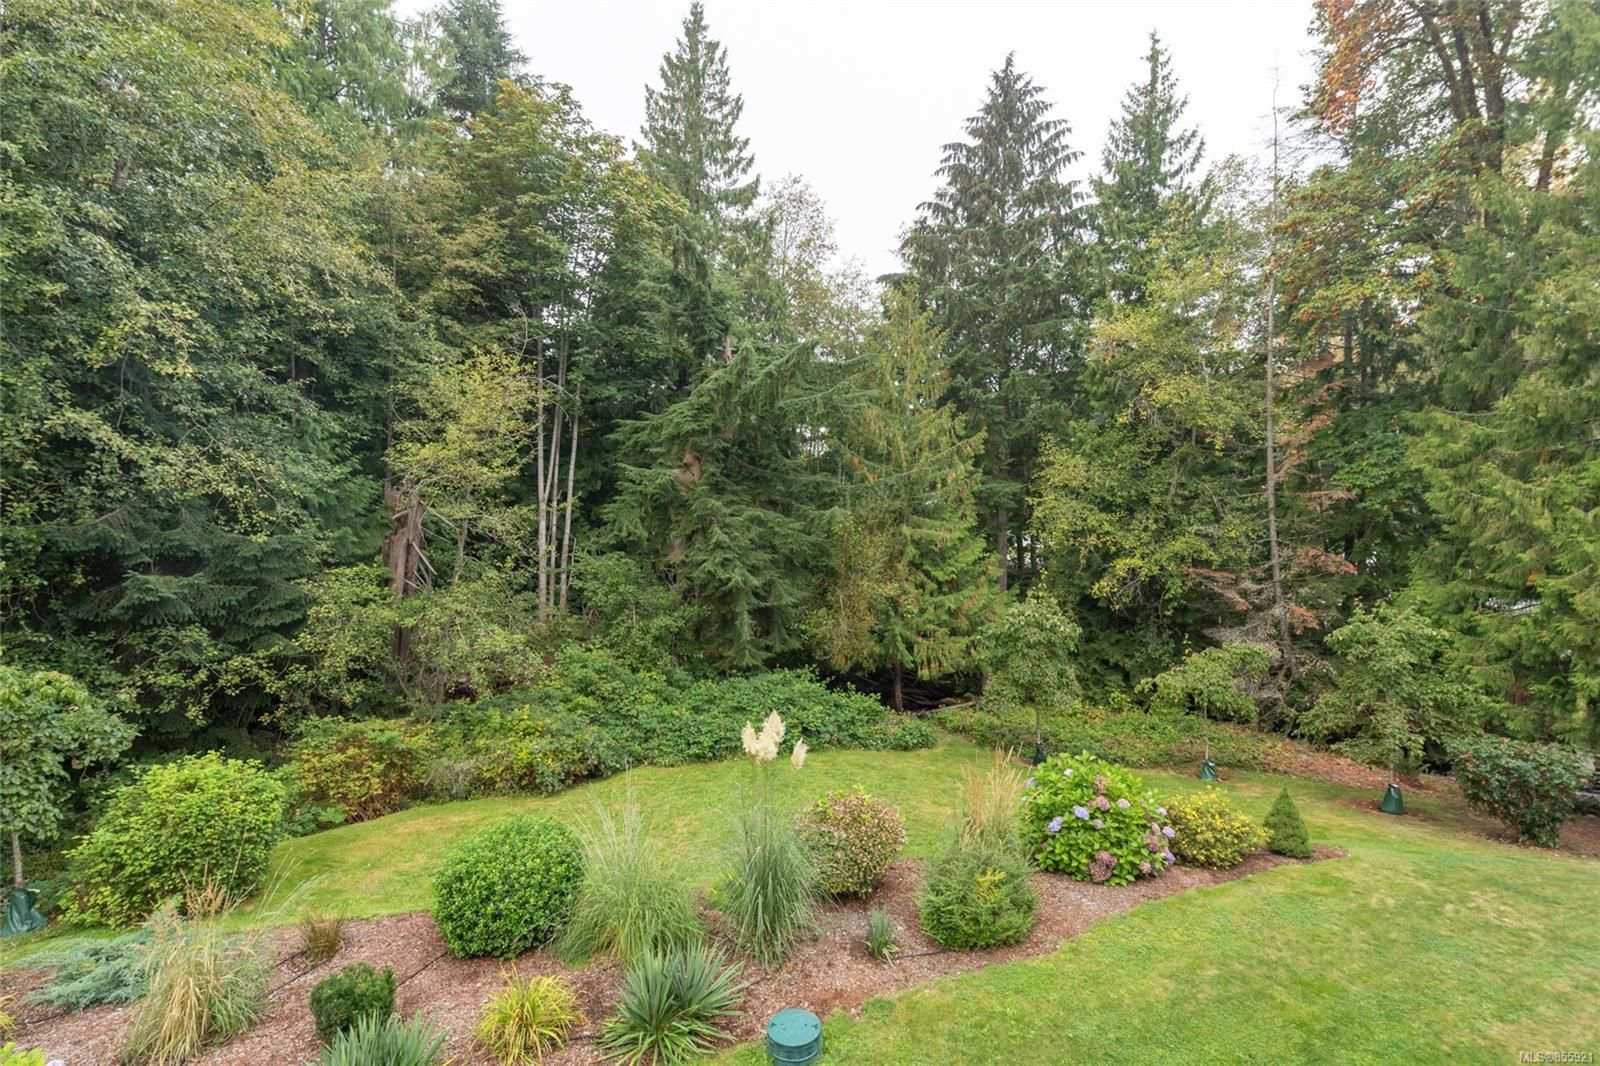 Photo 16: Photos: 206 1244 4TH Ave in : Du Ladysmith Row/Townhouse for sale (Duncan)  : MLS®# 855921